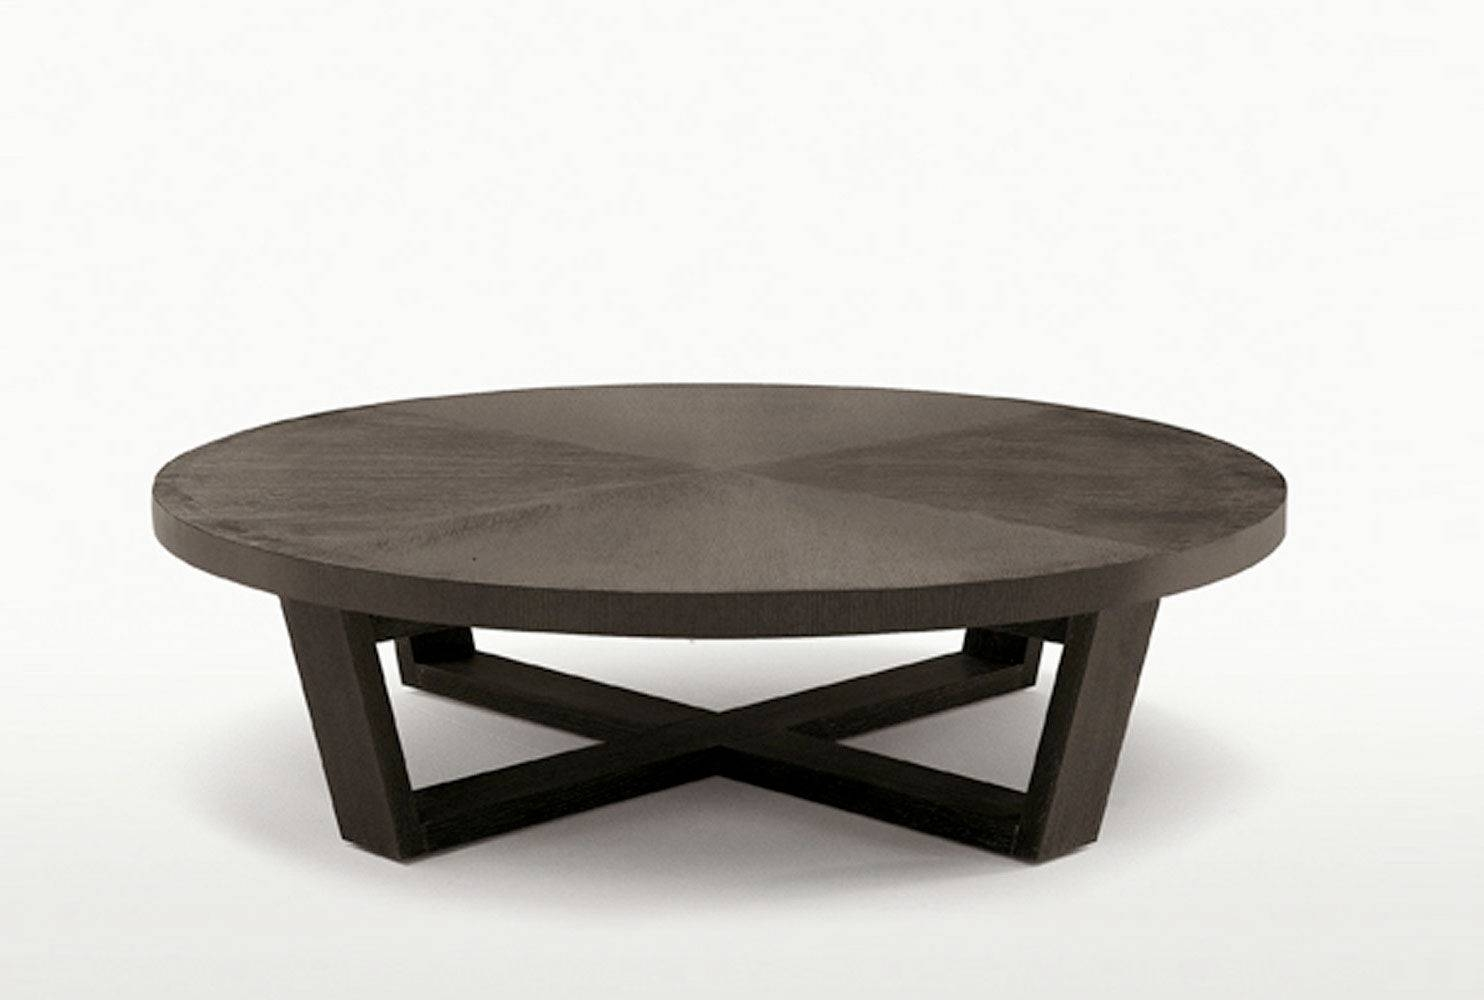 Contemporary Coffee Table / Wooden / Rectangular / Round - Xilos throughout Contemporary Coffee Table (Image 13 of 30)